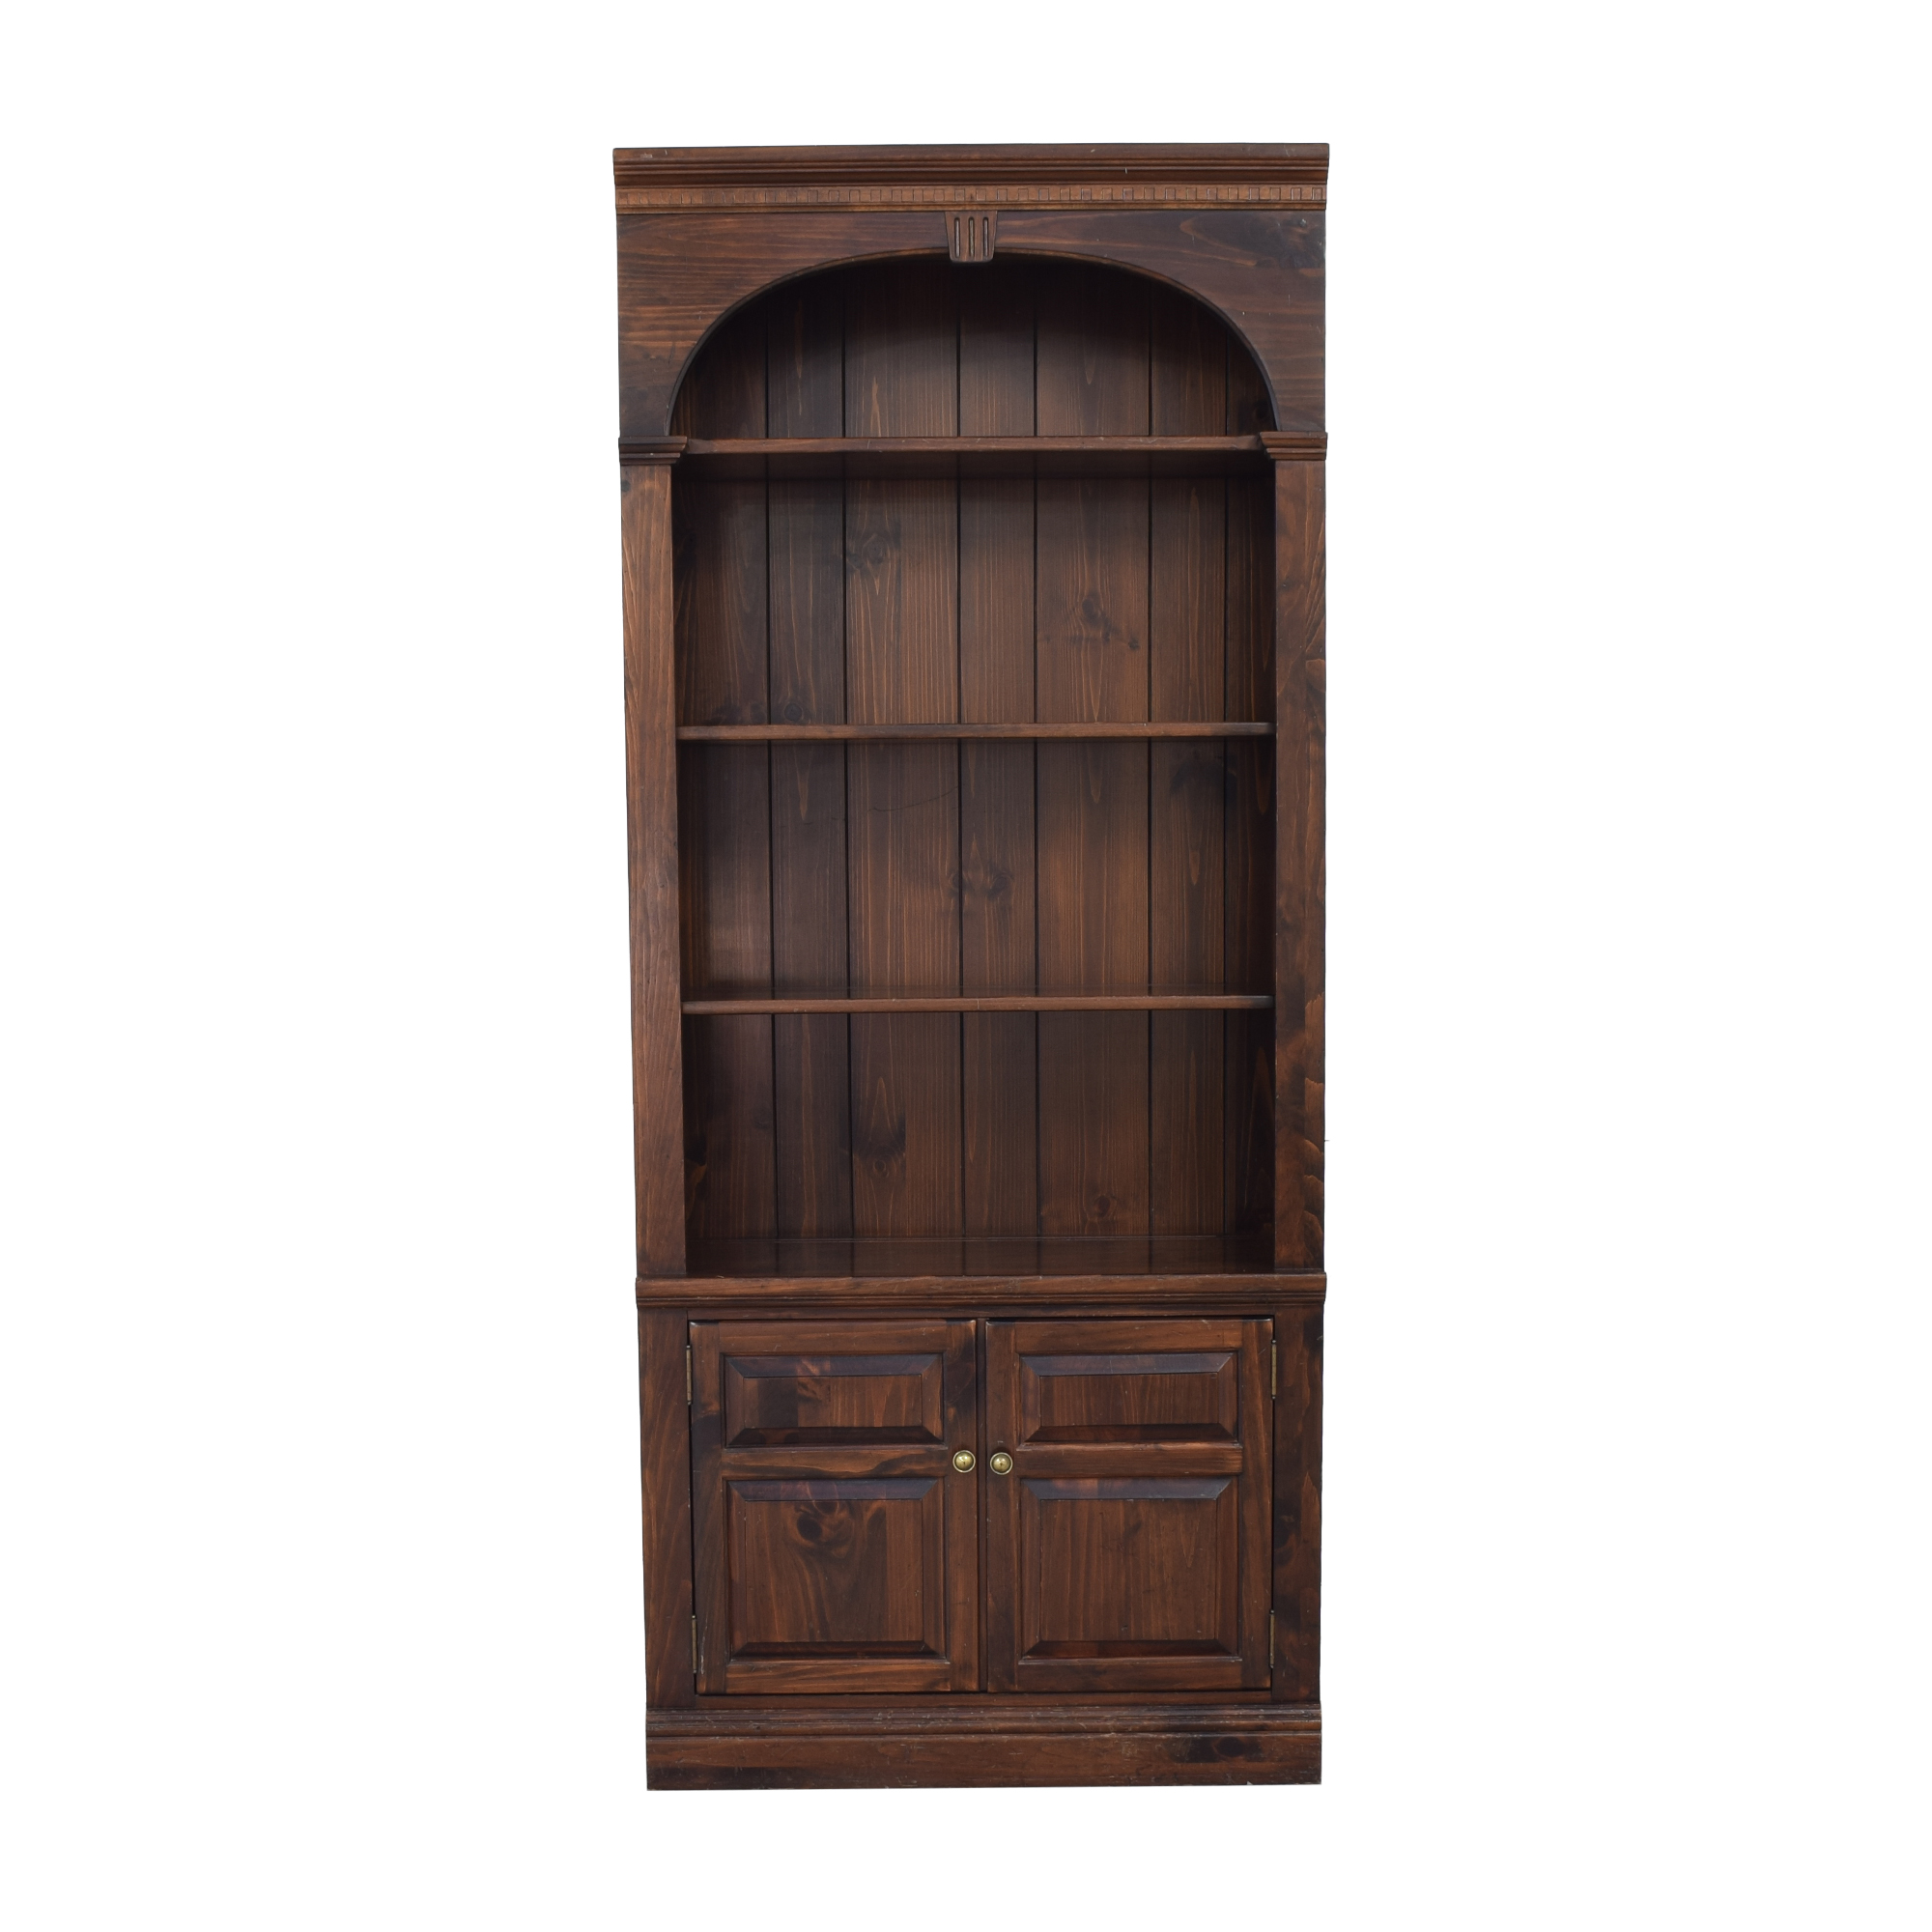 Ethan Allen Ethan Allen Georgian Court Bookcase for sale